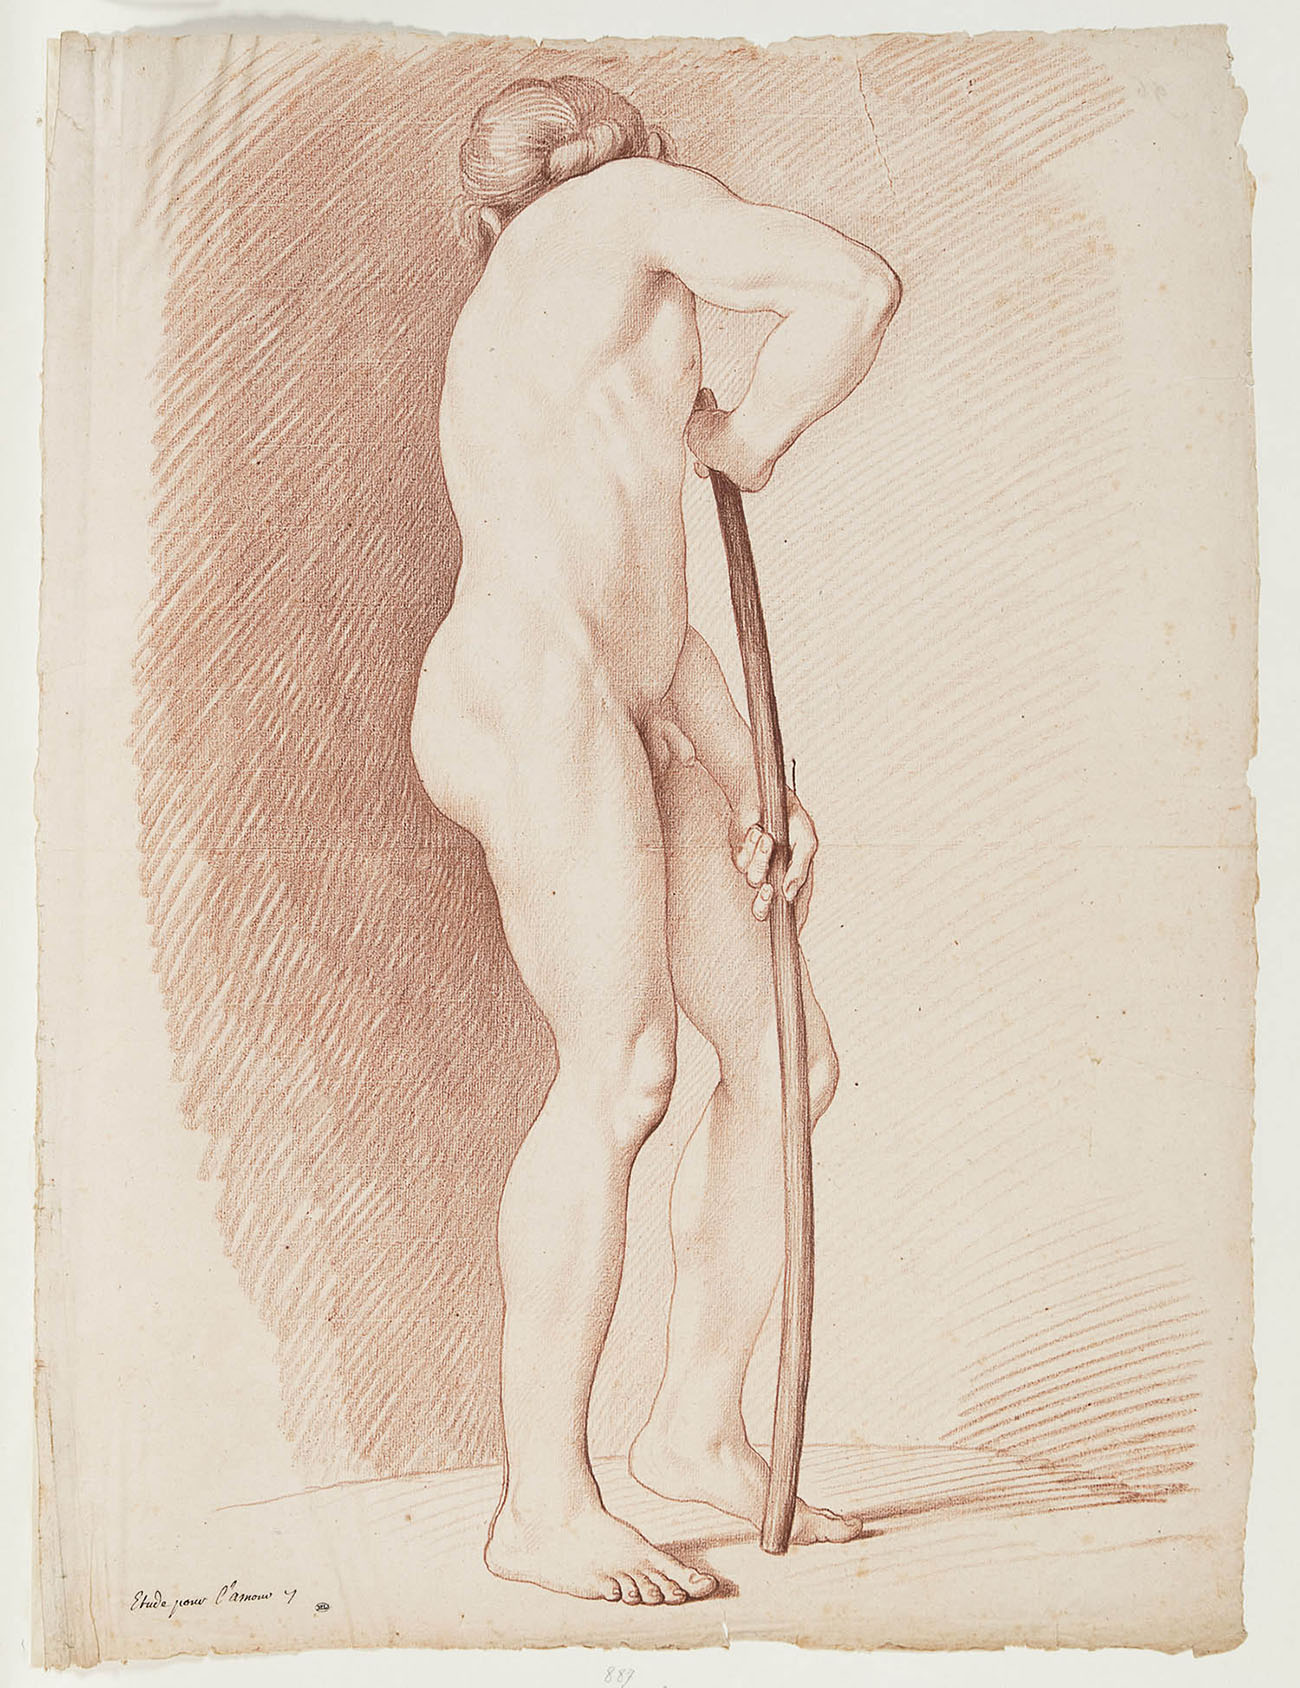 Study for Cupid, about 1745, Edme Bouchardon, Red chalk. Musée du Louvre, Département des Arts graphique, Paris. Image © 2015 Musée du Louvre / Laurent Chastel.